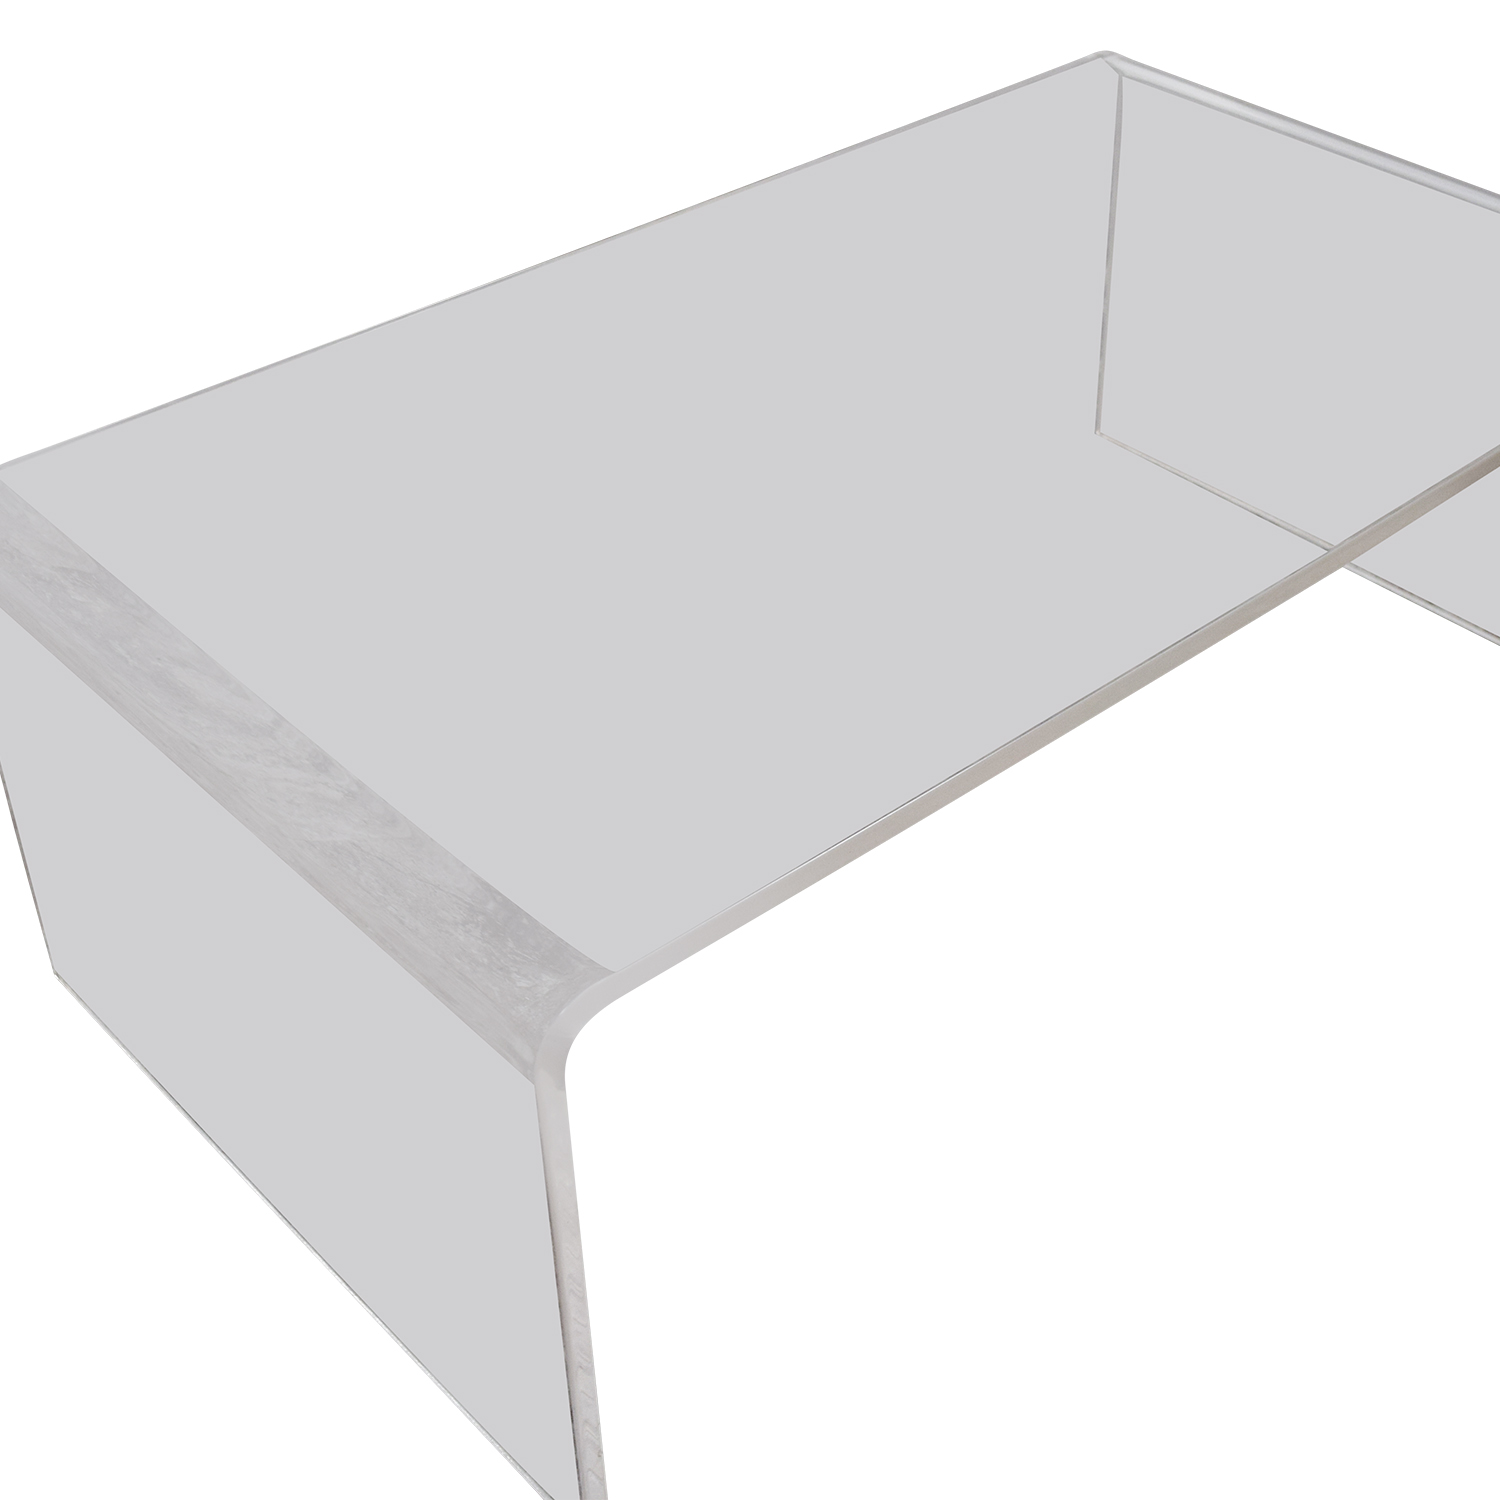 30% OFF CB2 CB2 Peekaboo Acrylic Coffee Table Tables